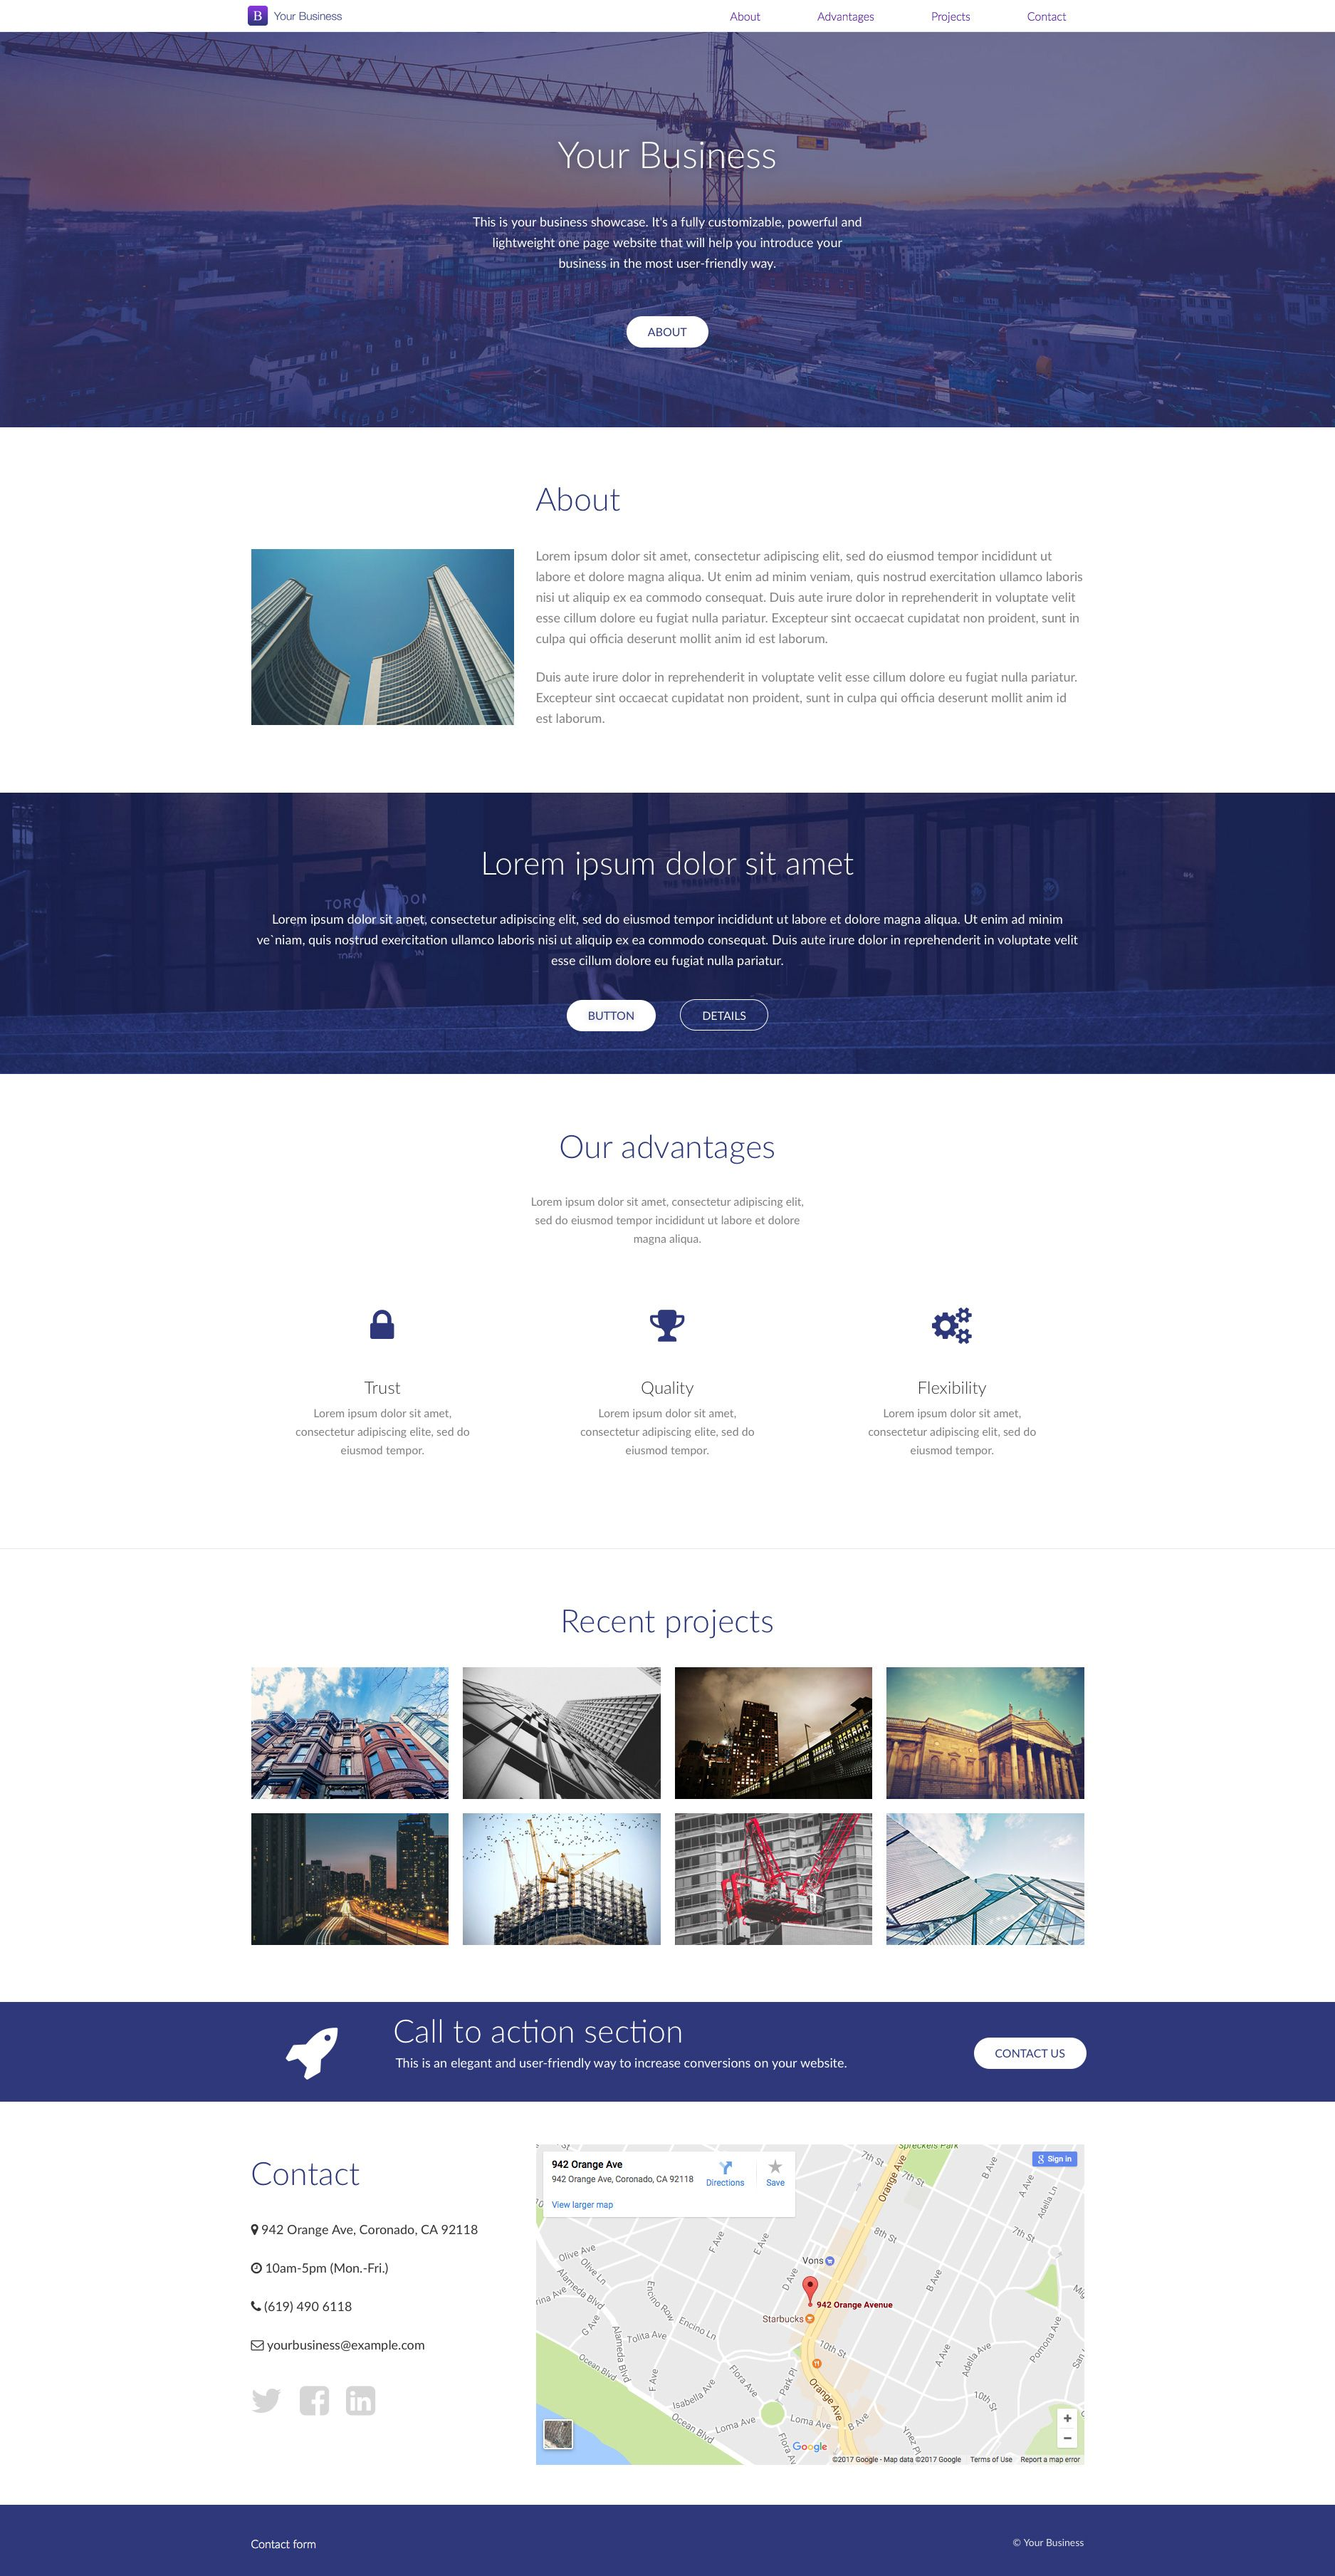 Your business is a free html5 one page website template which comes your business is a free html5 one page website template which comes with two different color style it will help you introduce your business in the most wajeb Images